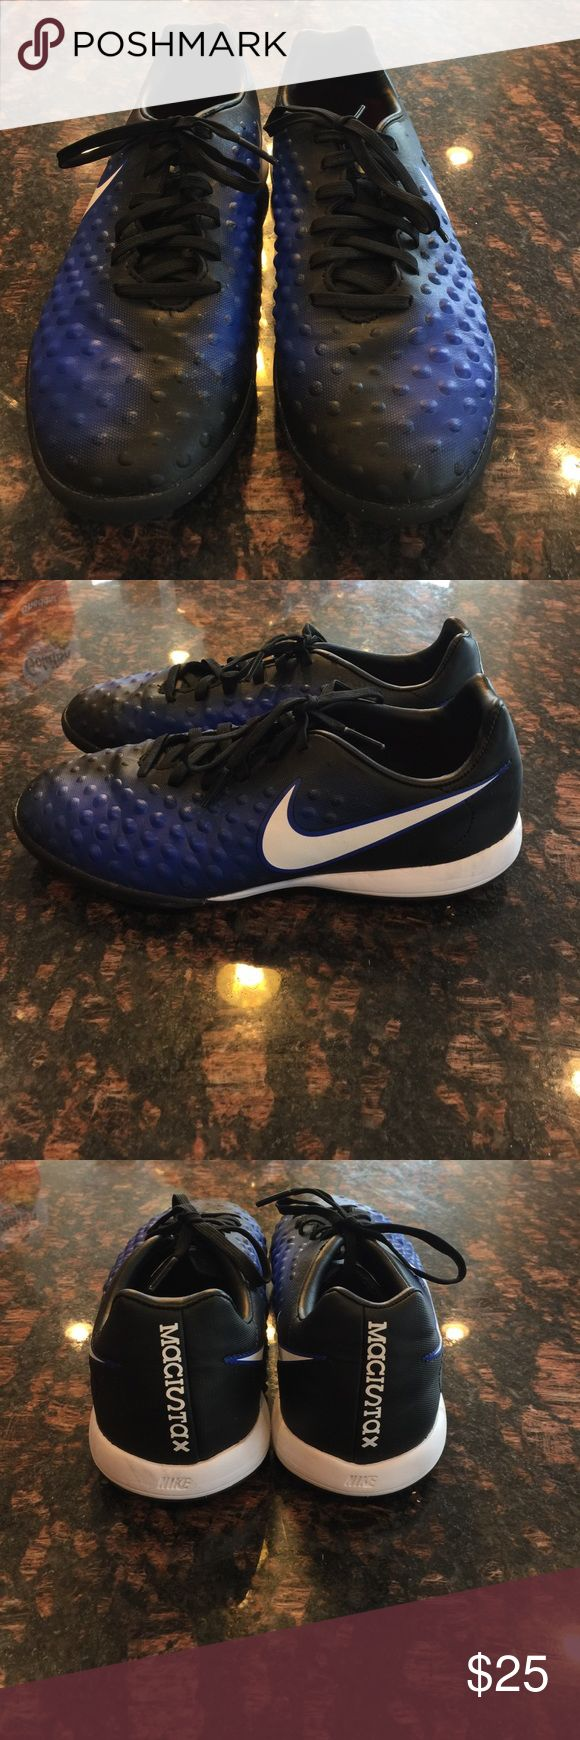 Nike Soccer Turf Cleats Nike Soccer Turf Cleats in excellent condition.  Very rarely worn. Nike Shoes